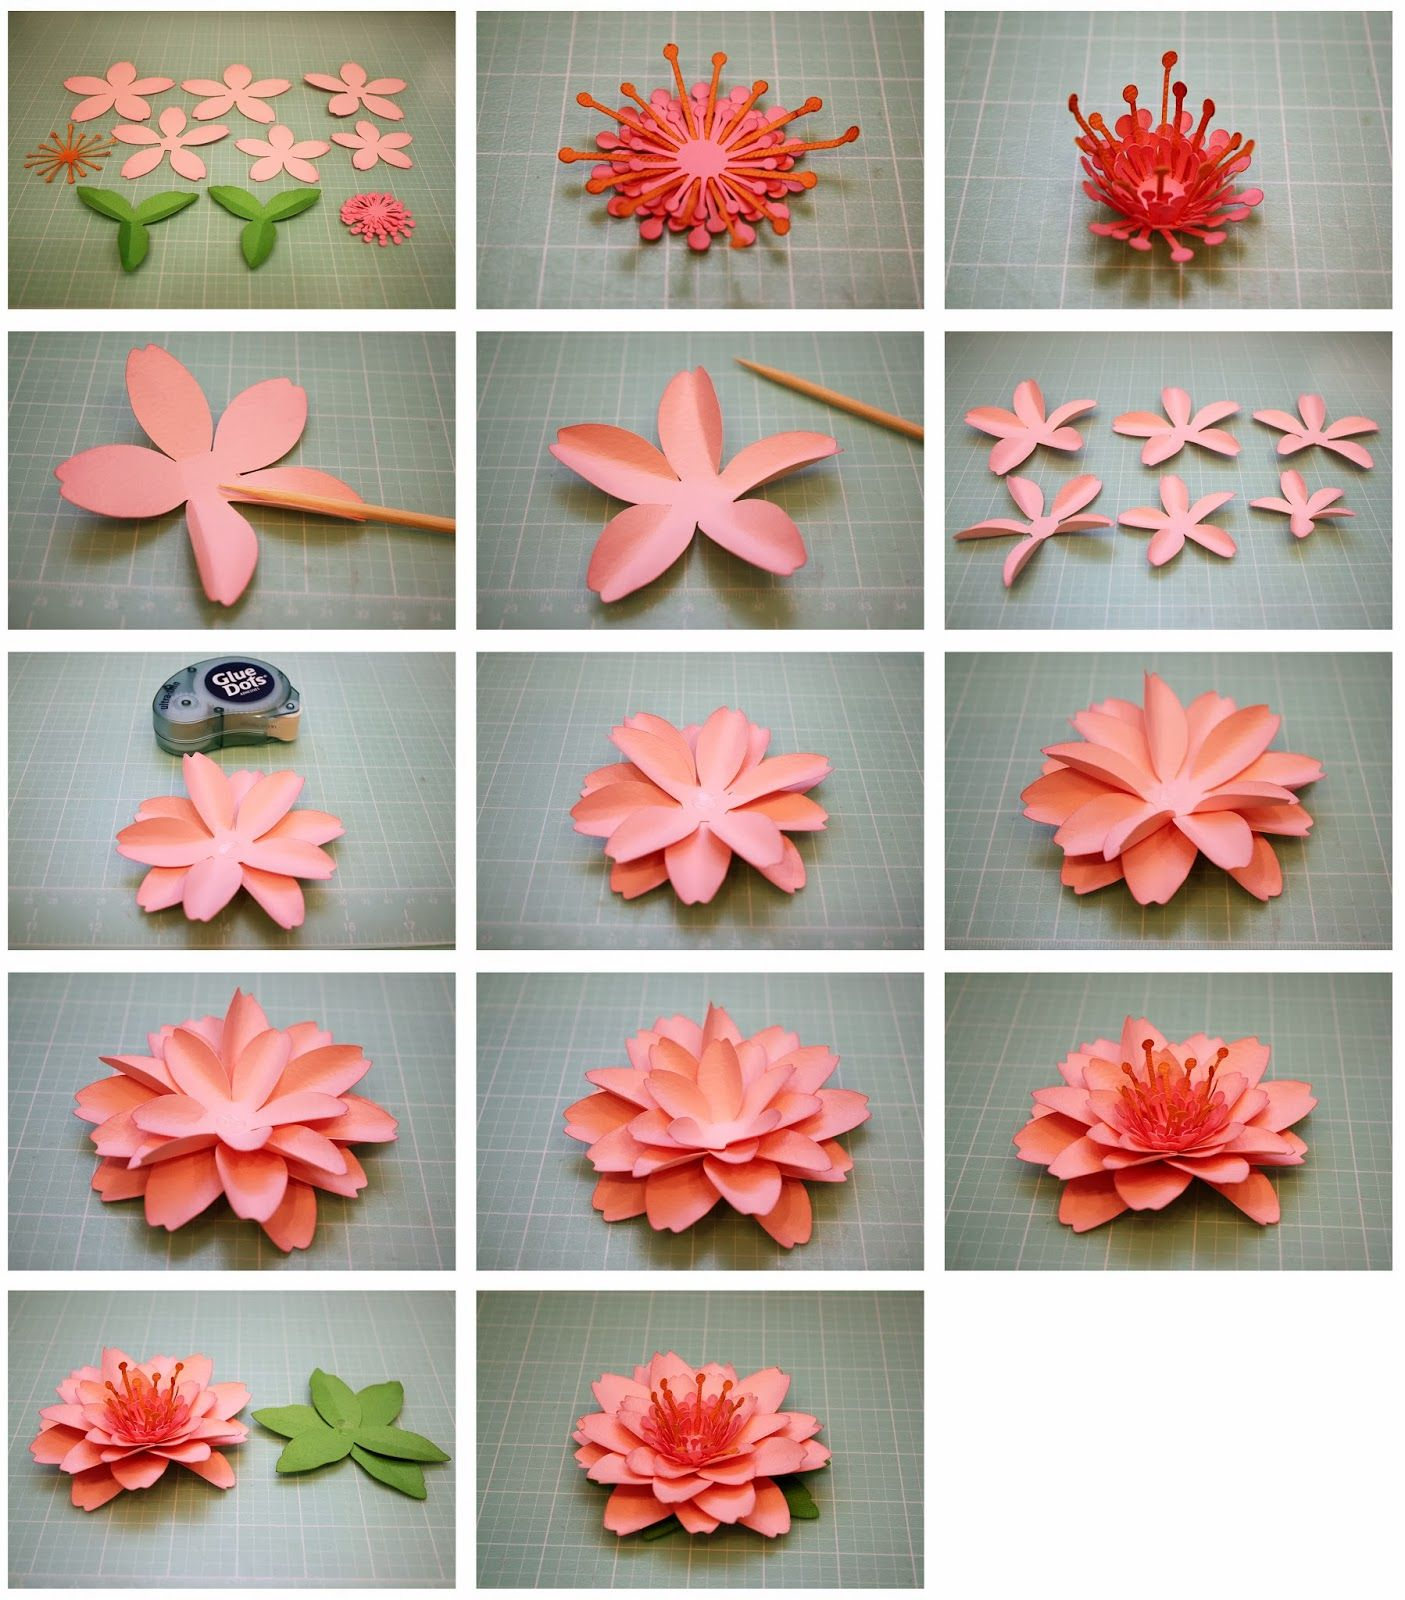 Bits of Paper: Daffodil and Cherry Blossom 3D Paper ... - photo#14